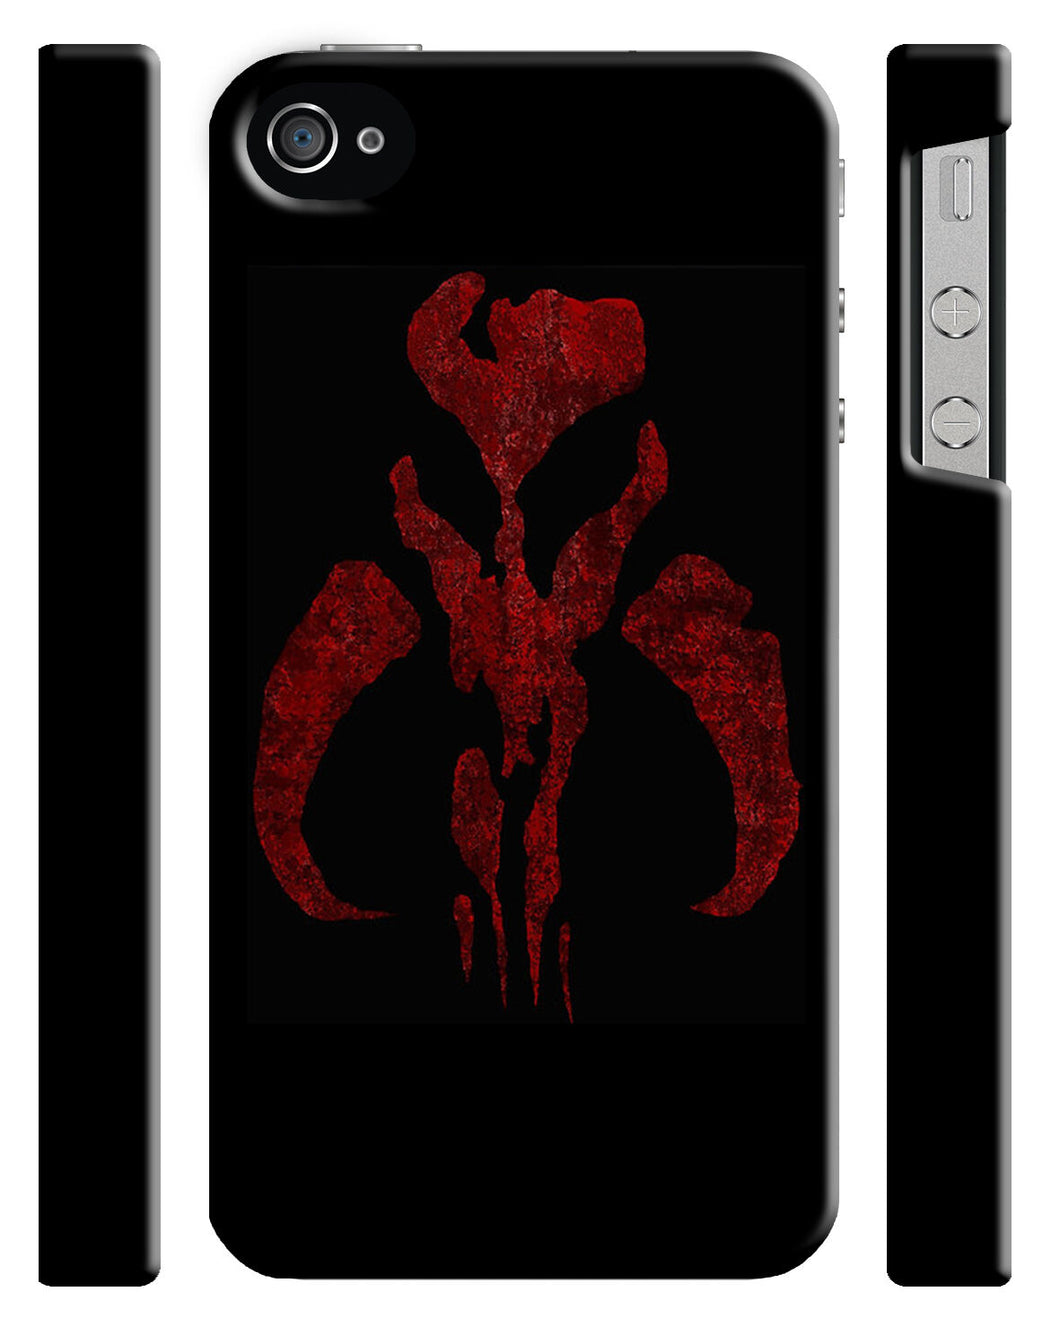 Star Wars Mandalorian Iphone 4s 5 6 7 8 X XS Max XR 11 Pro Plus Case SE 10